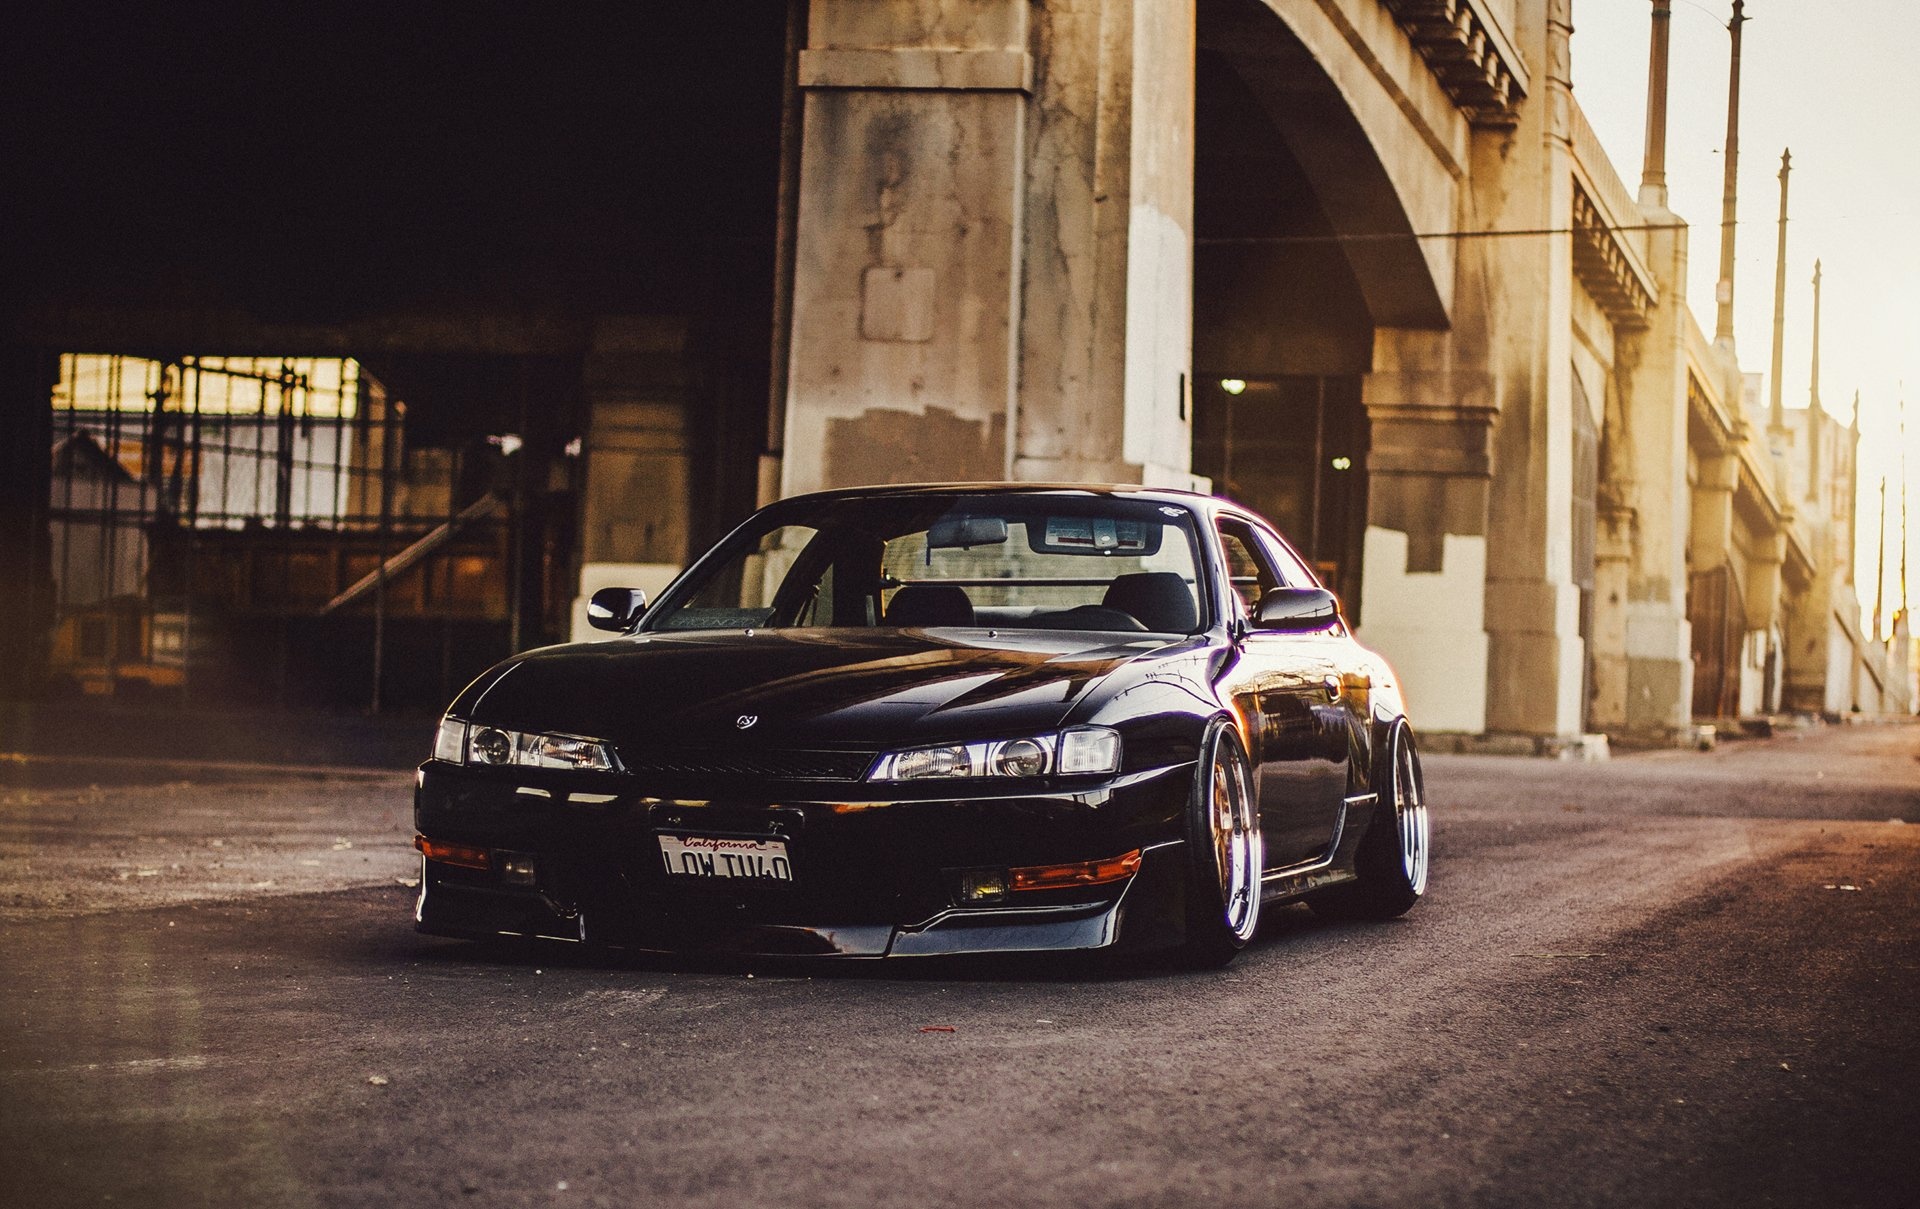 1920x1209 - Nissan Silvia S14 Wallpapers 1